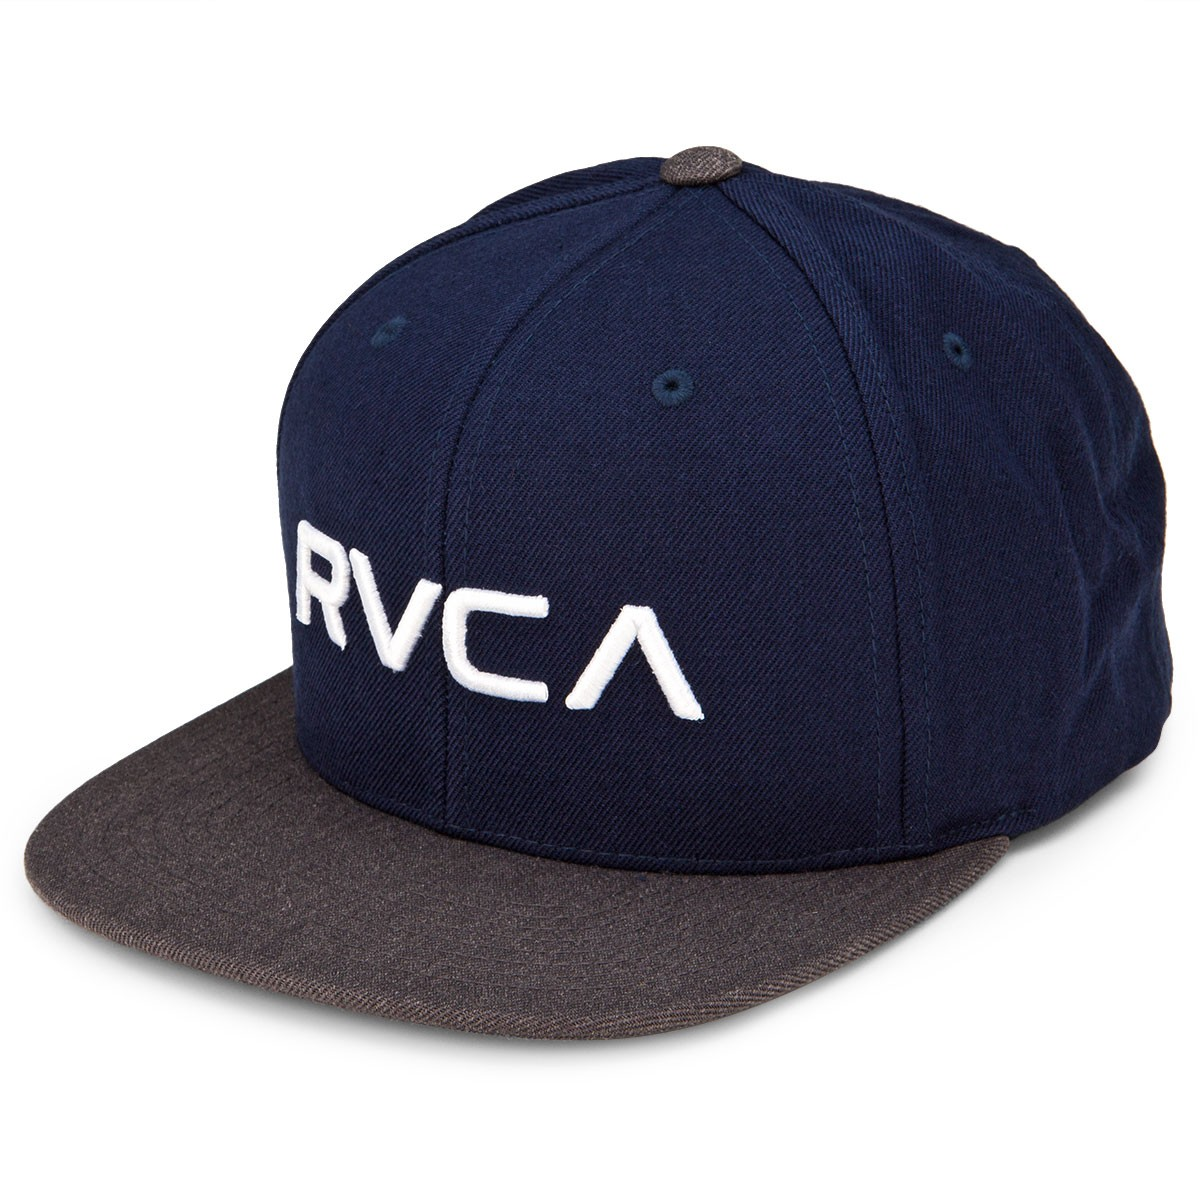 official photos 8b764 93368 coupon for rvca twill snapback iii blue grey hat 3a4d4 8f80c  shop rvca  rvca twill snapback hat 1902a 93317